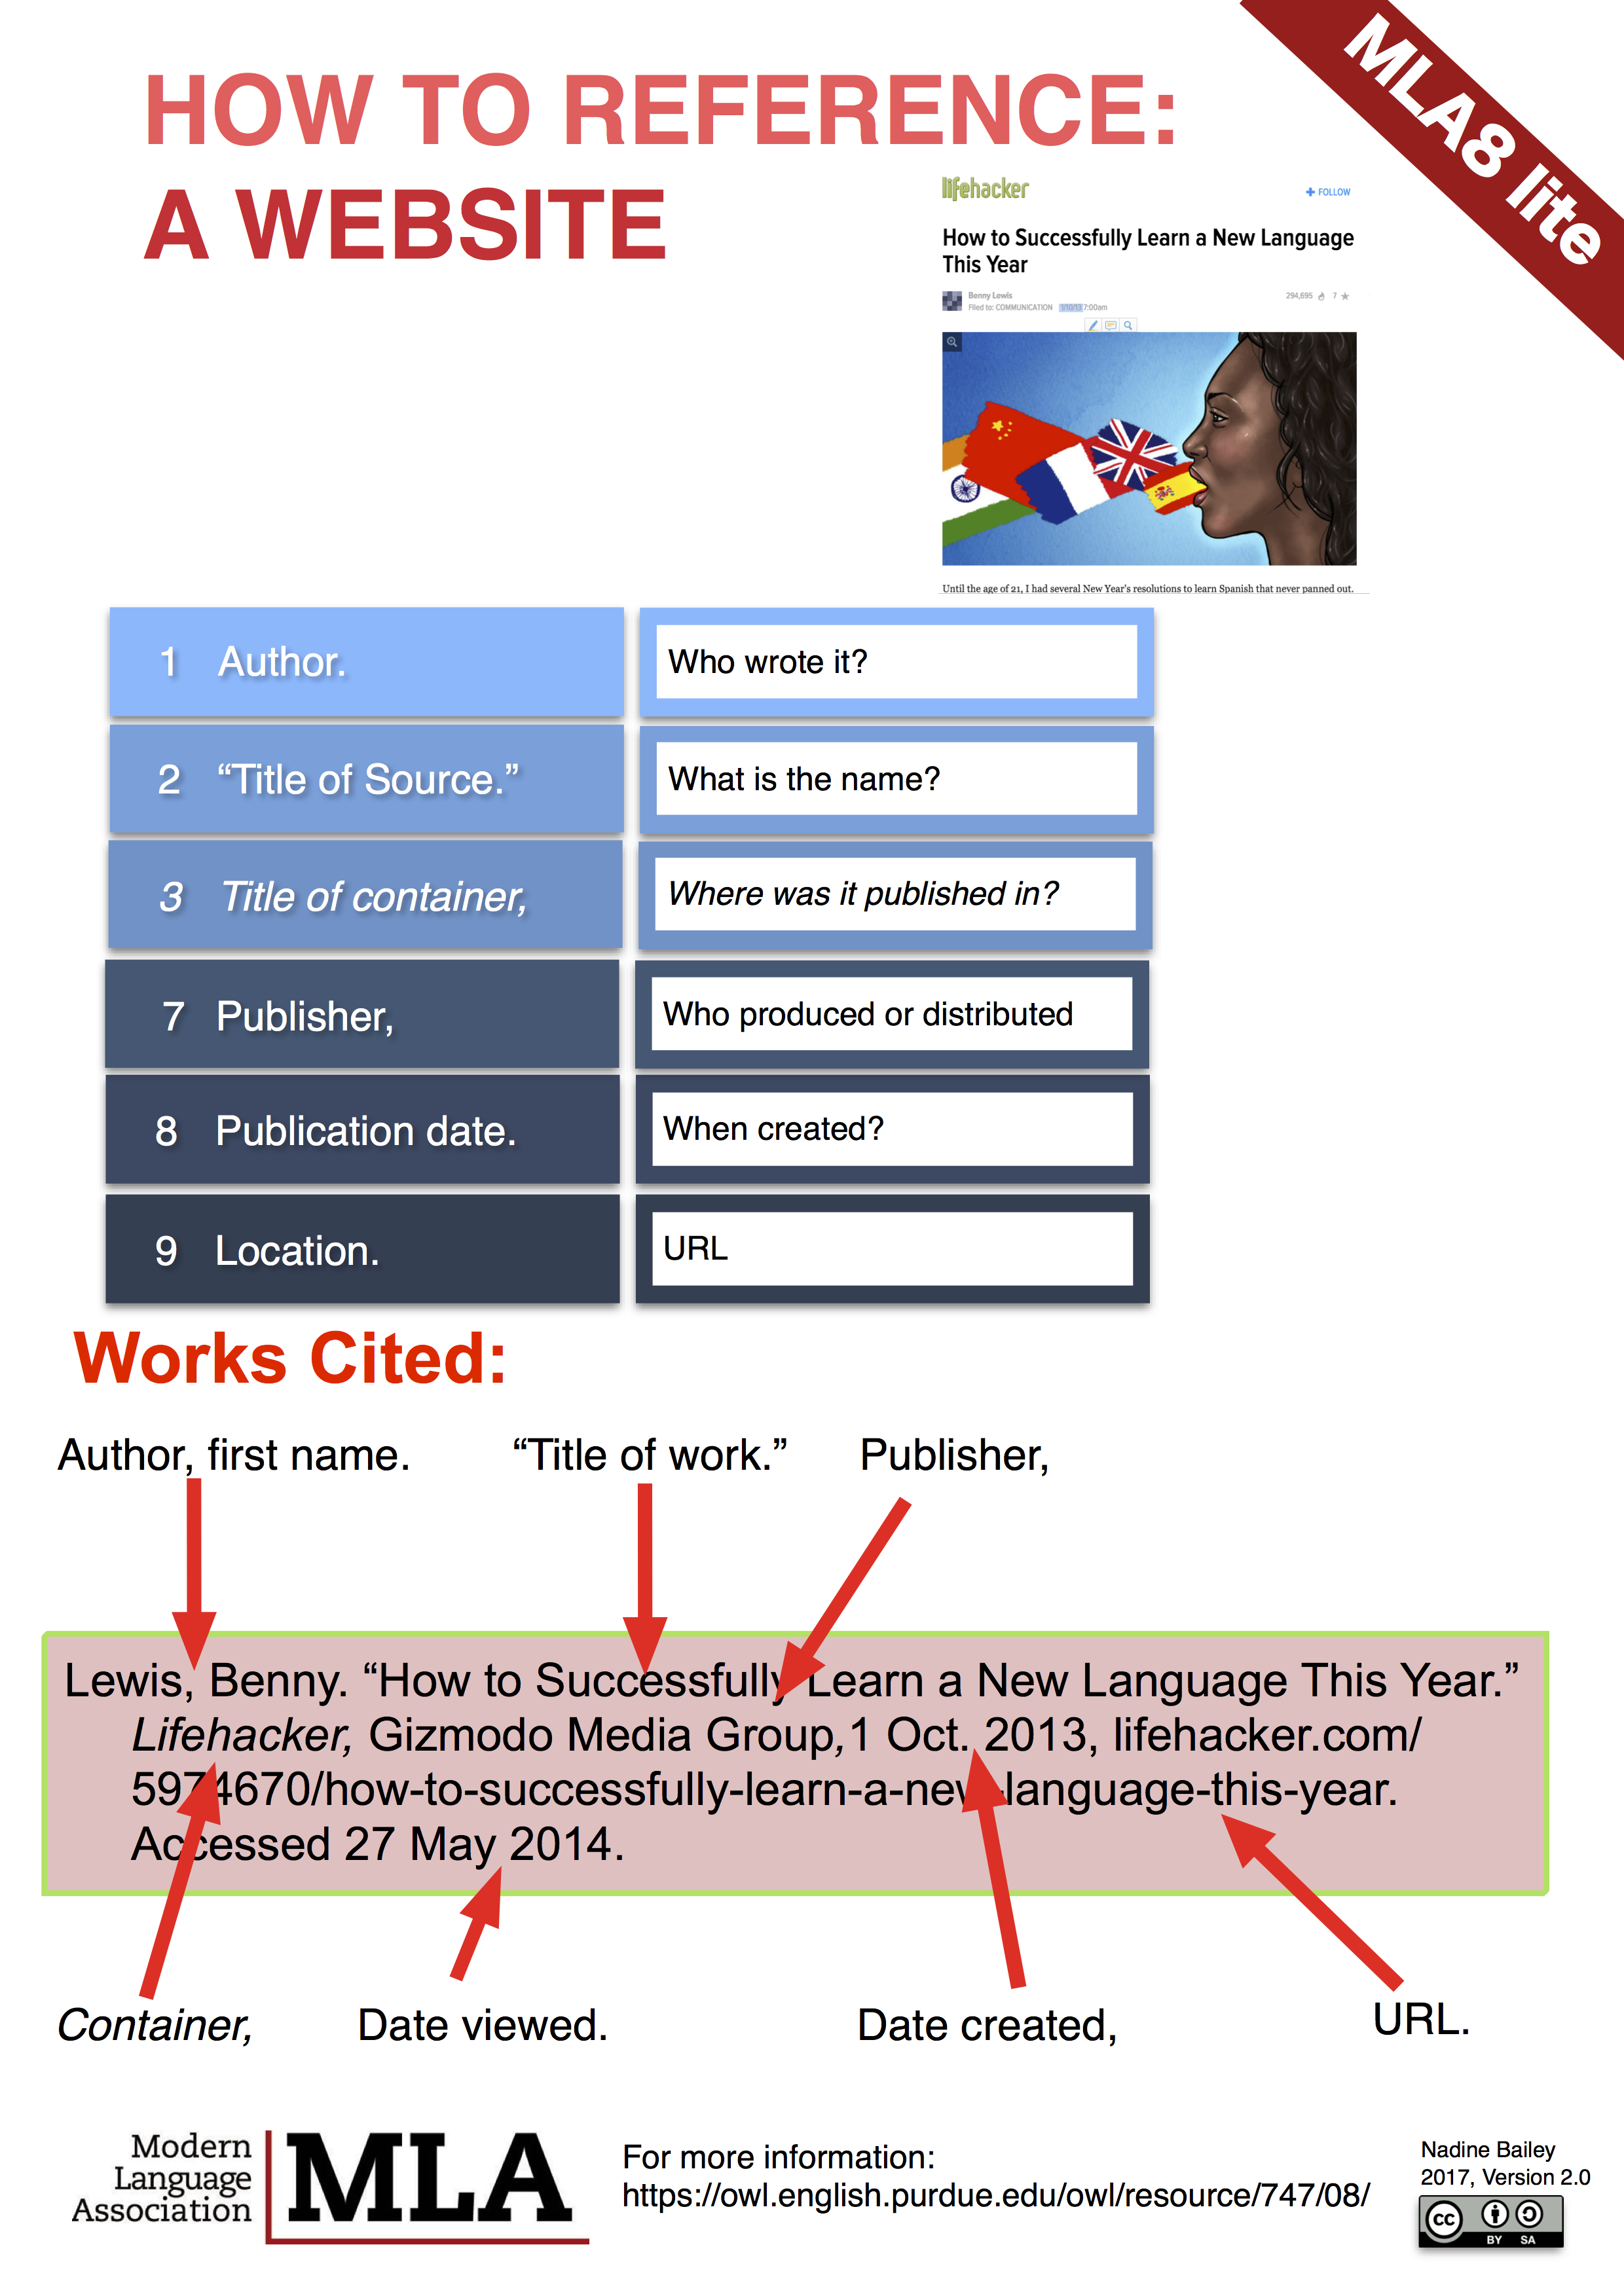 Mla8 Lite Guide Libguide At Canadian International School Singapore In 2021 Work Cited Website Images How To Text Citation A Without Author